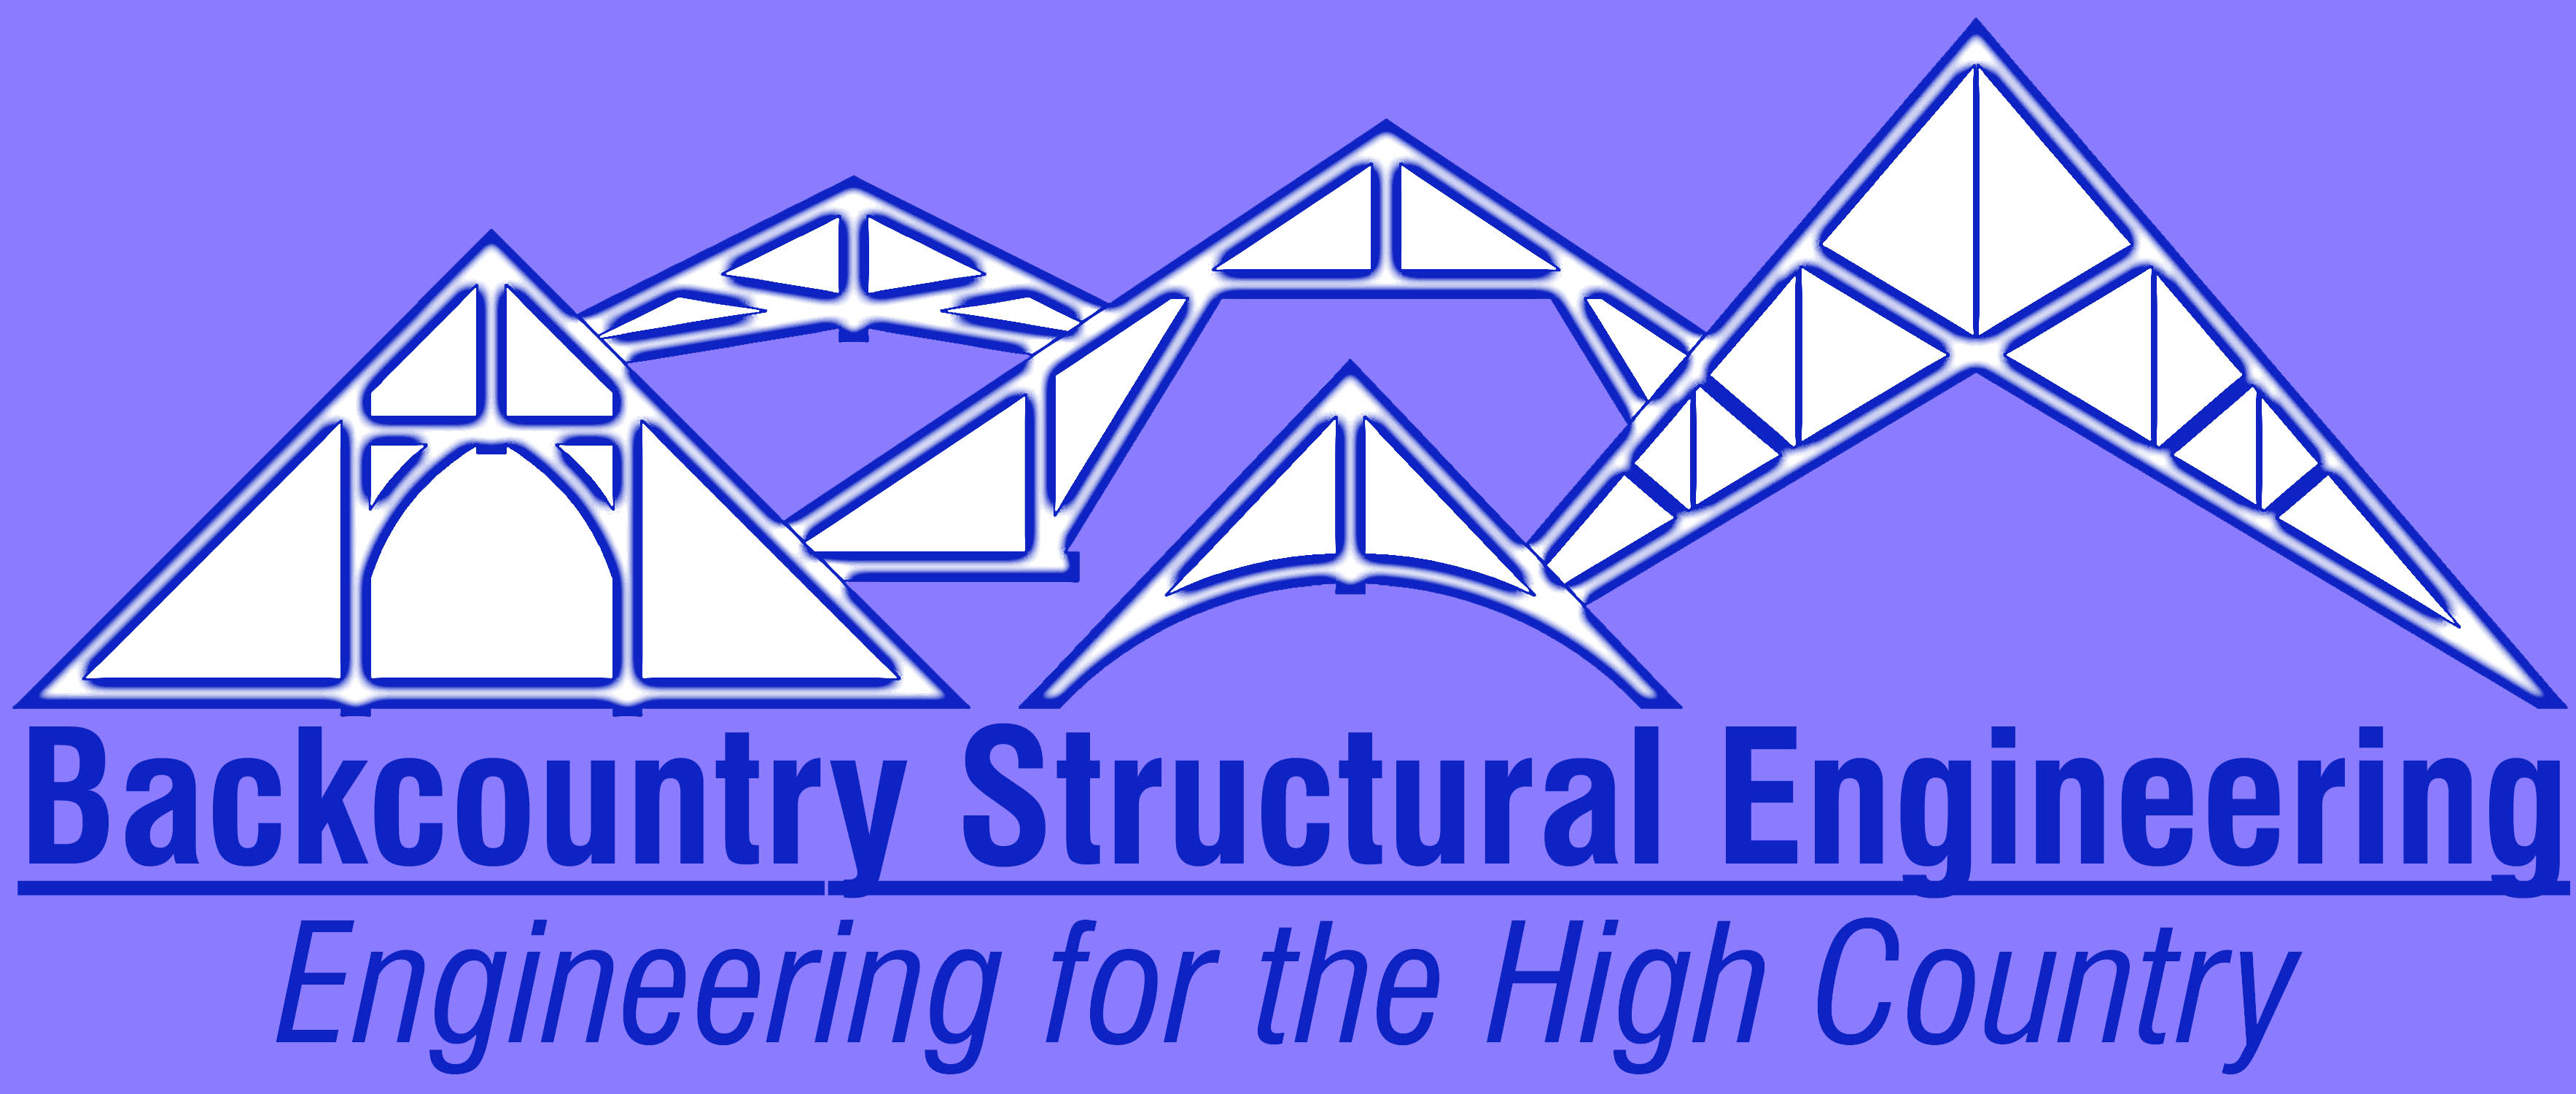 Backcountry Structural Engineering